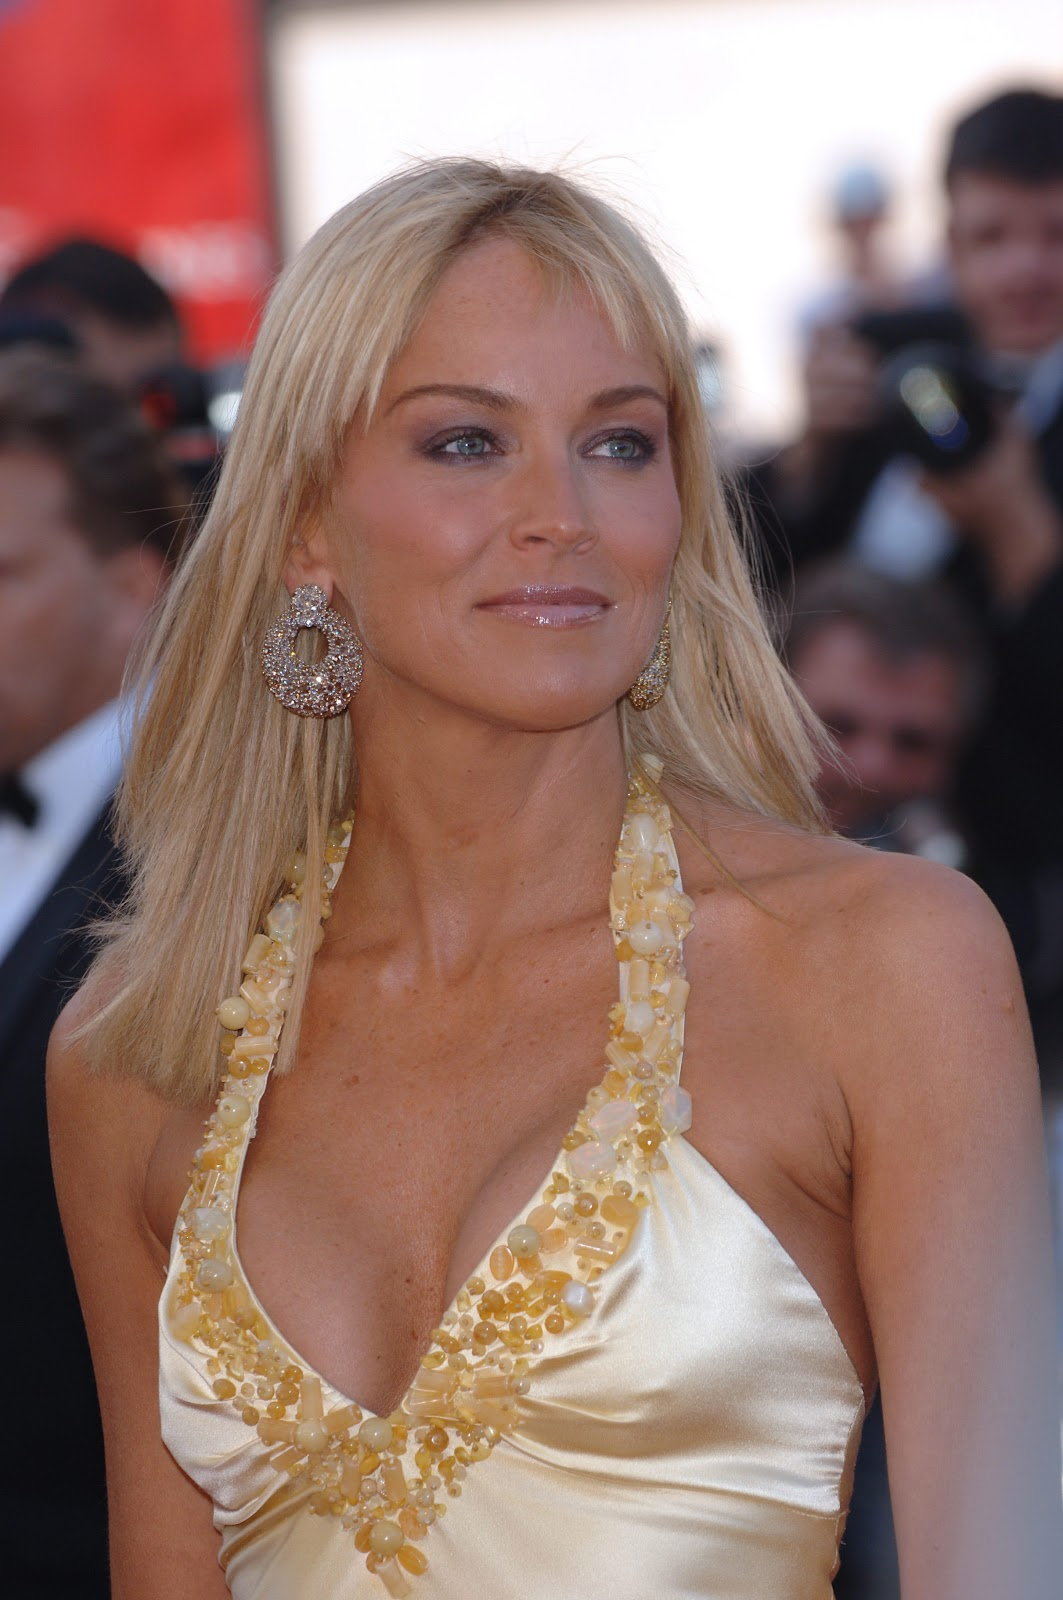 Sharon Stone Hd Wallpapers High Definition Free Background